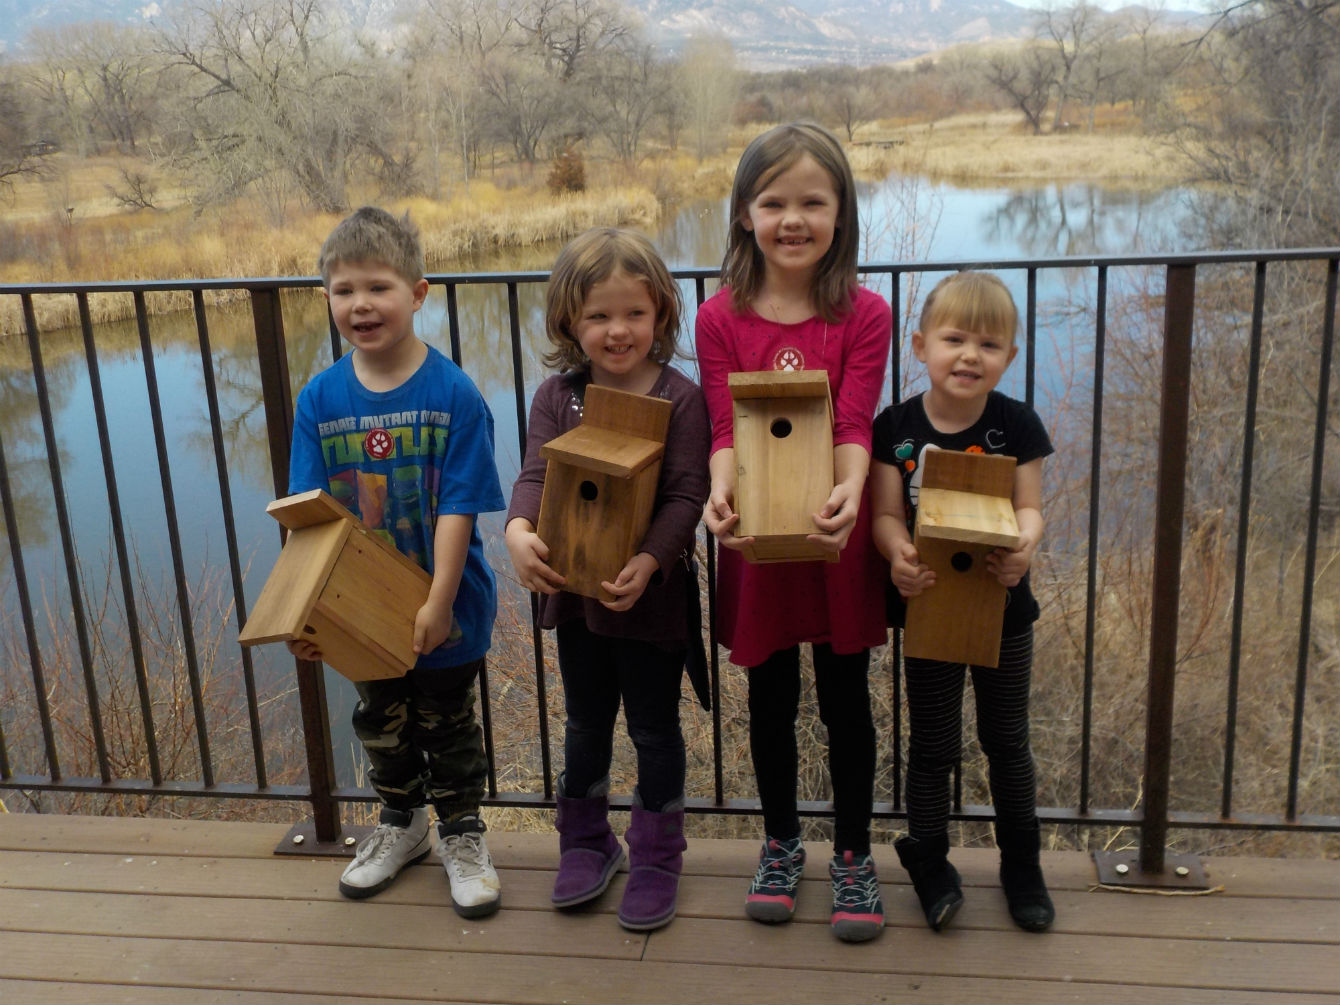 Children holding birdhouses they made on the deck of the nature center